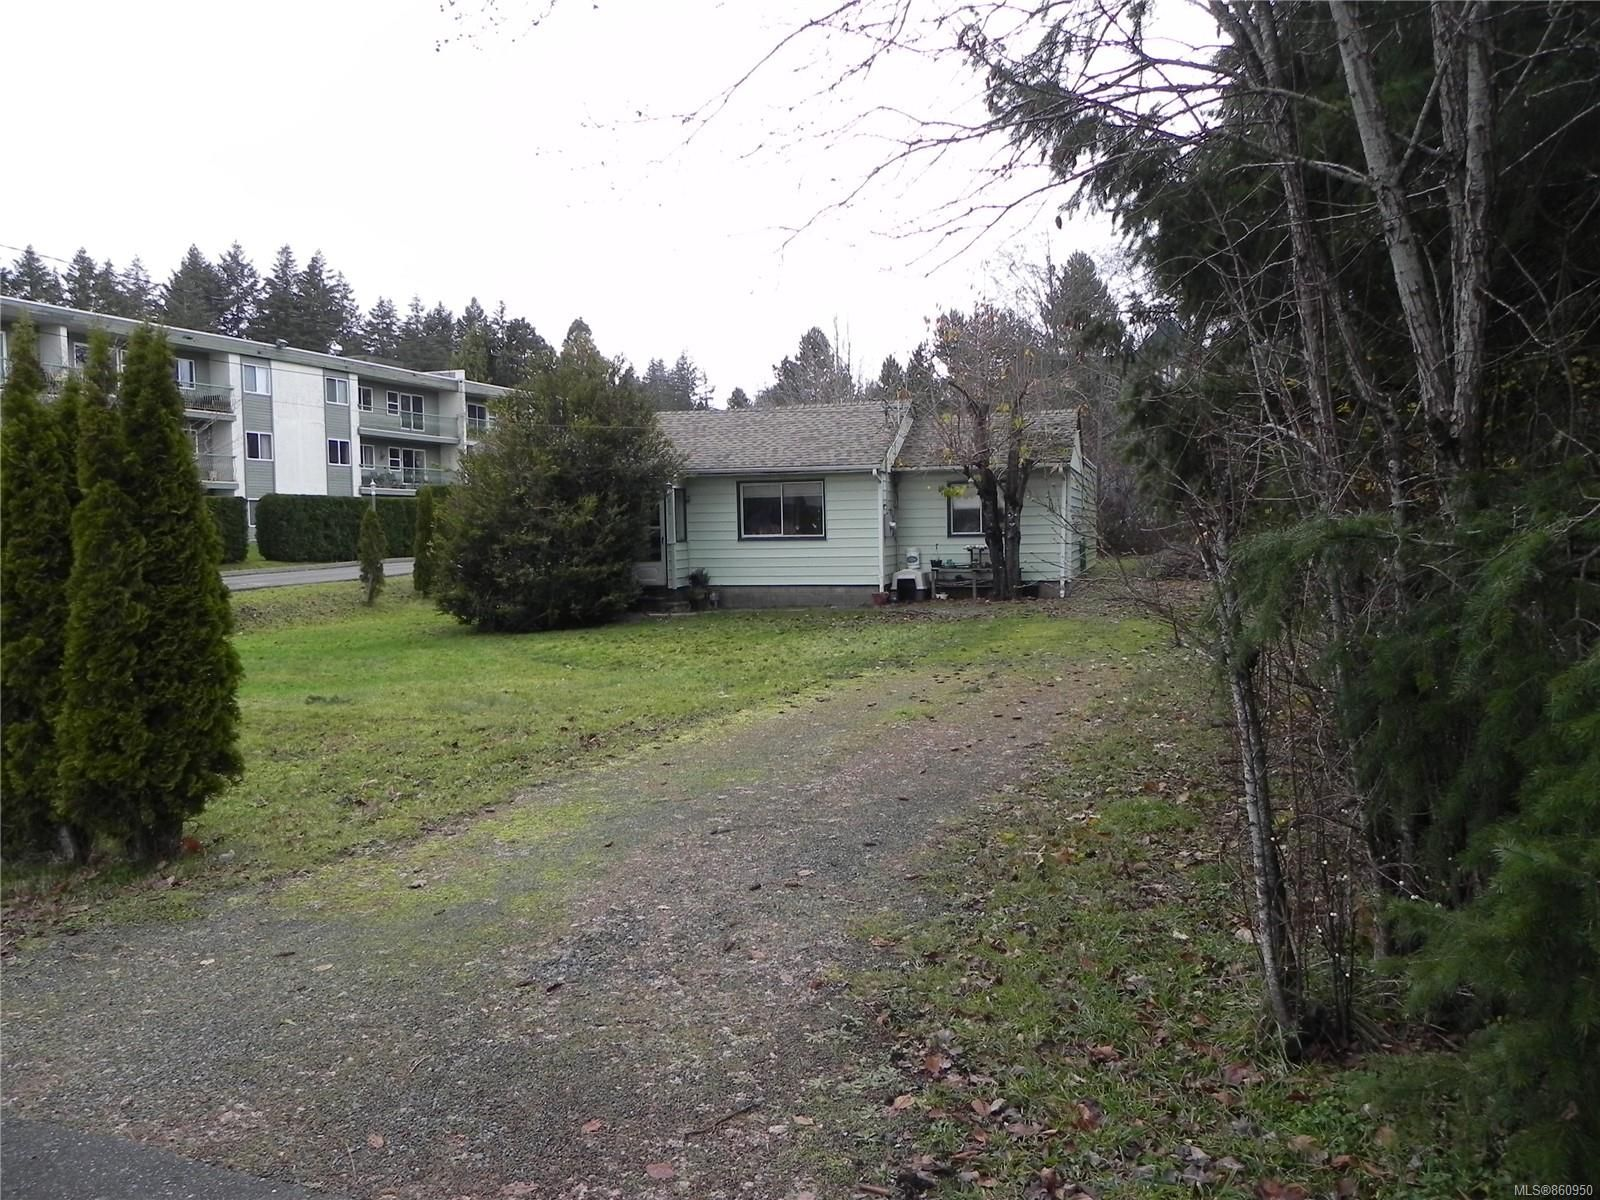 Main Photo: 210 Back Rd in : CV Courtenay East House for sale (Comox Valley)  : MLS®# 860950